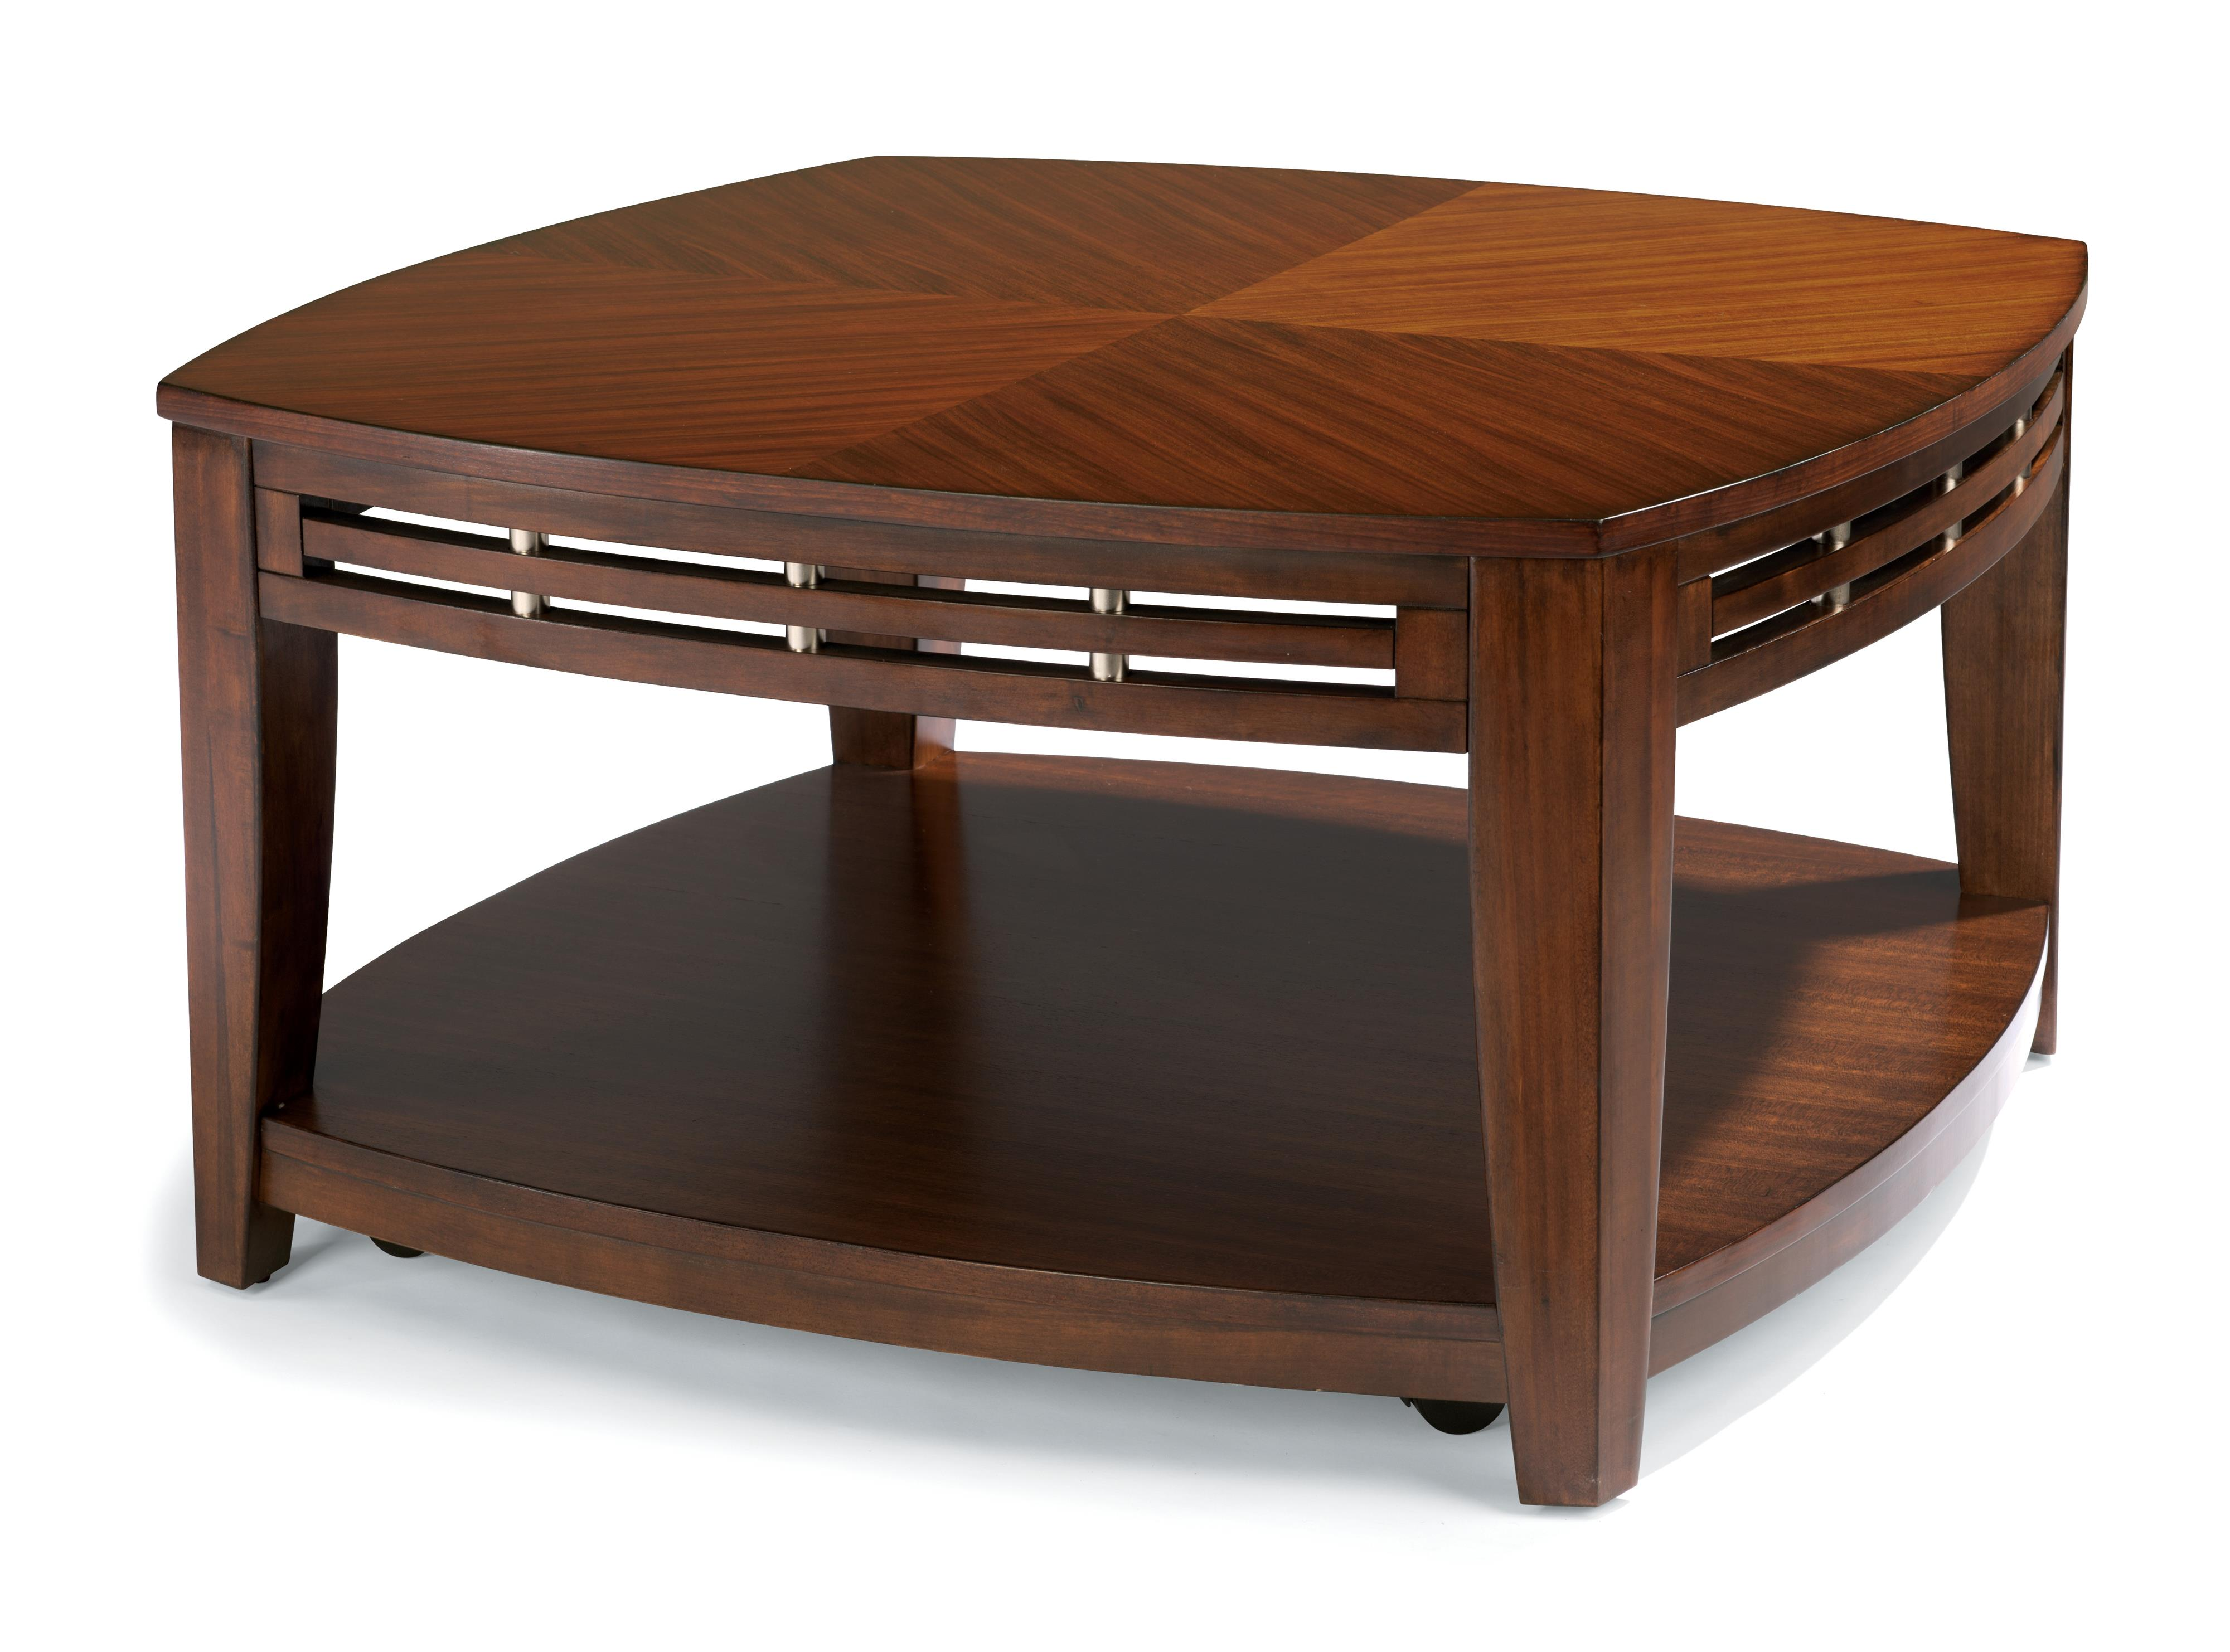 Flexsteel Bali Sq. Cocktail Table w/ casters - Item Number: W1409-0321